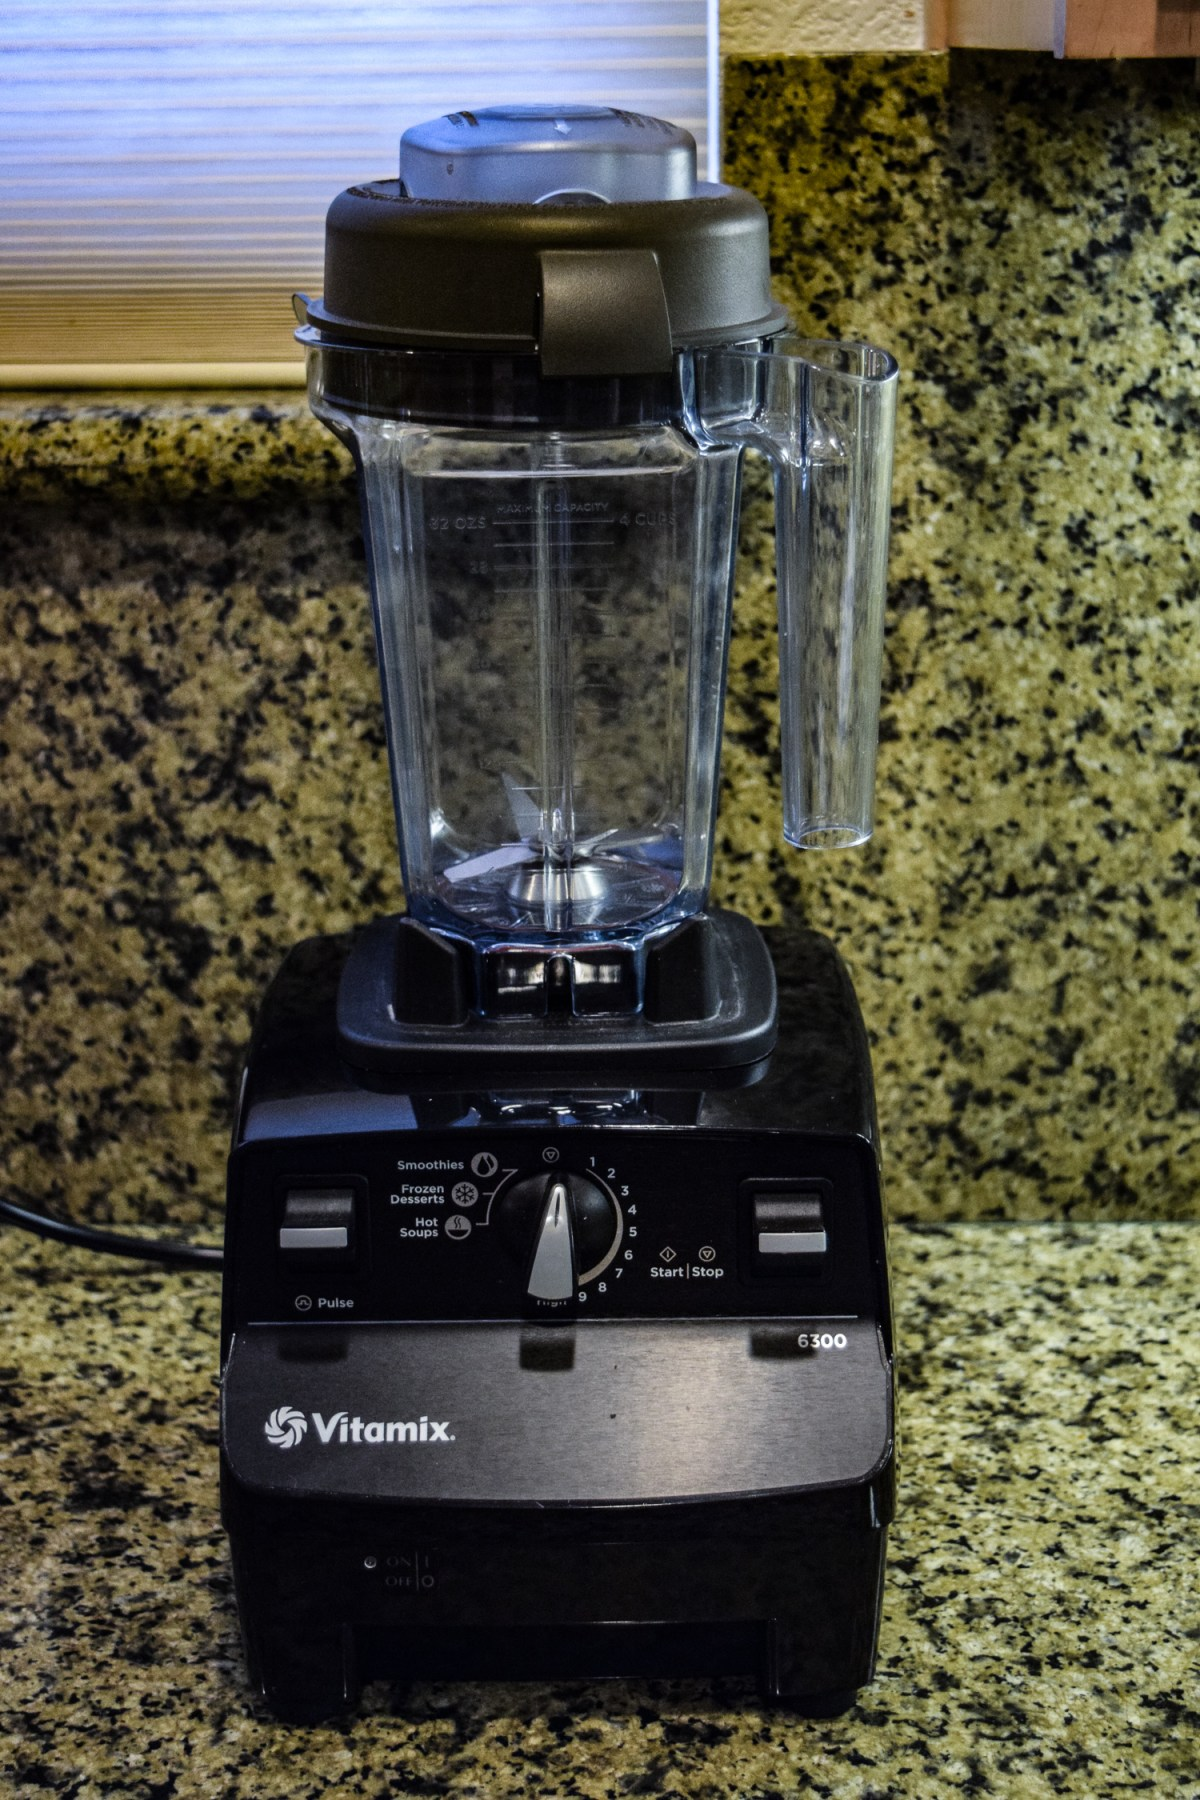 Vitamix dry grains container